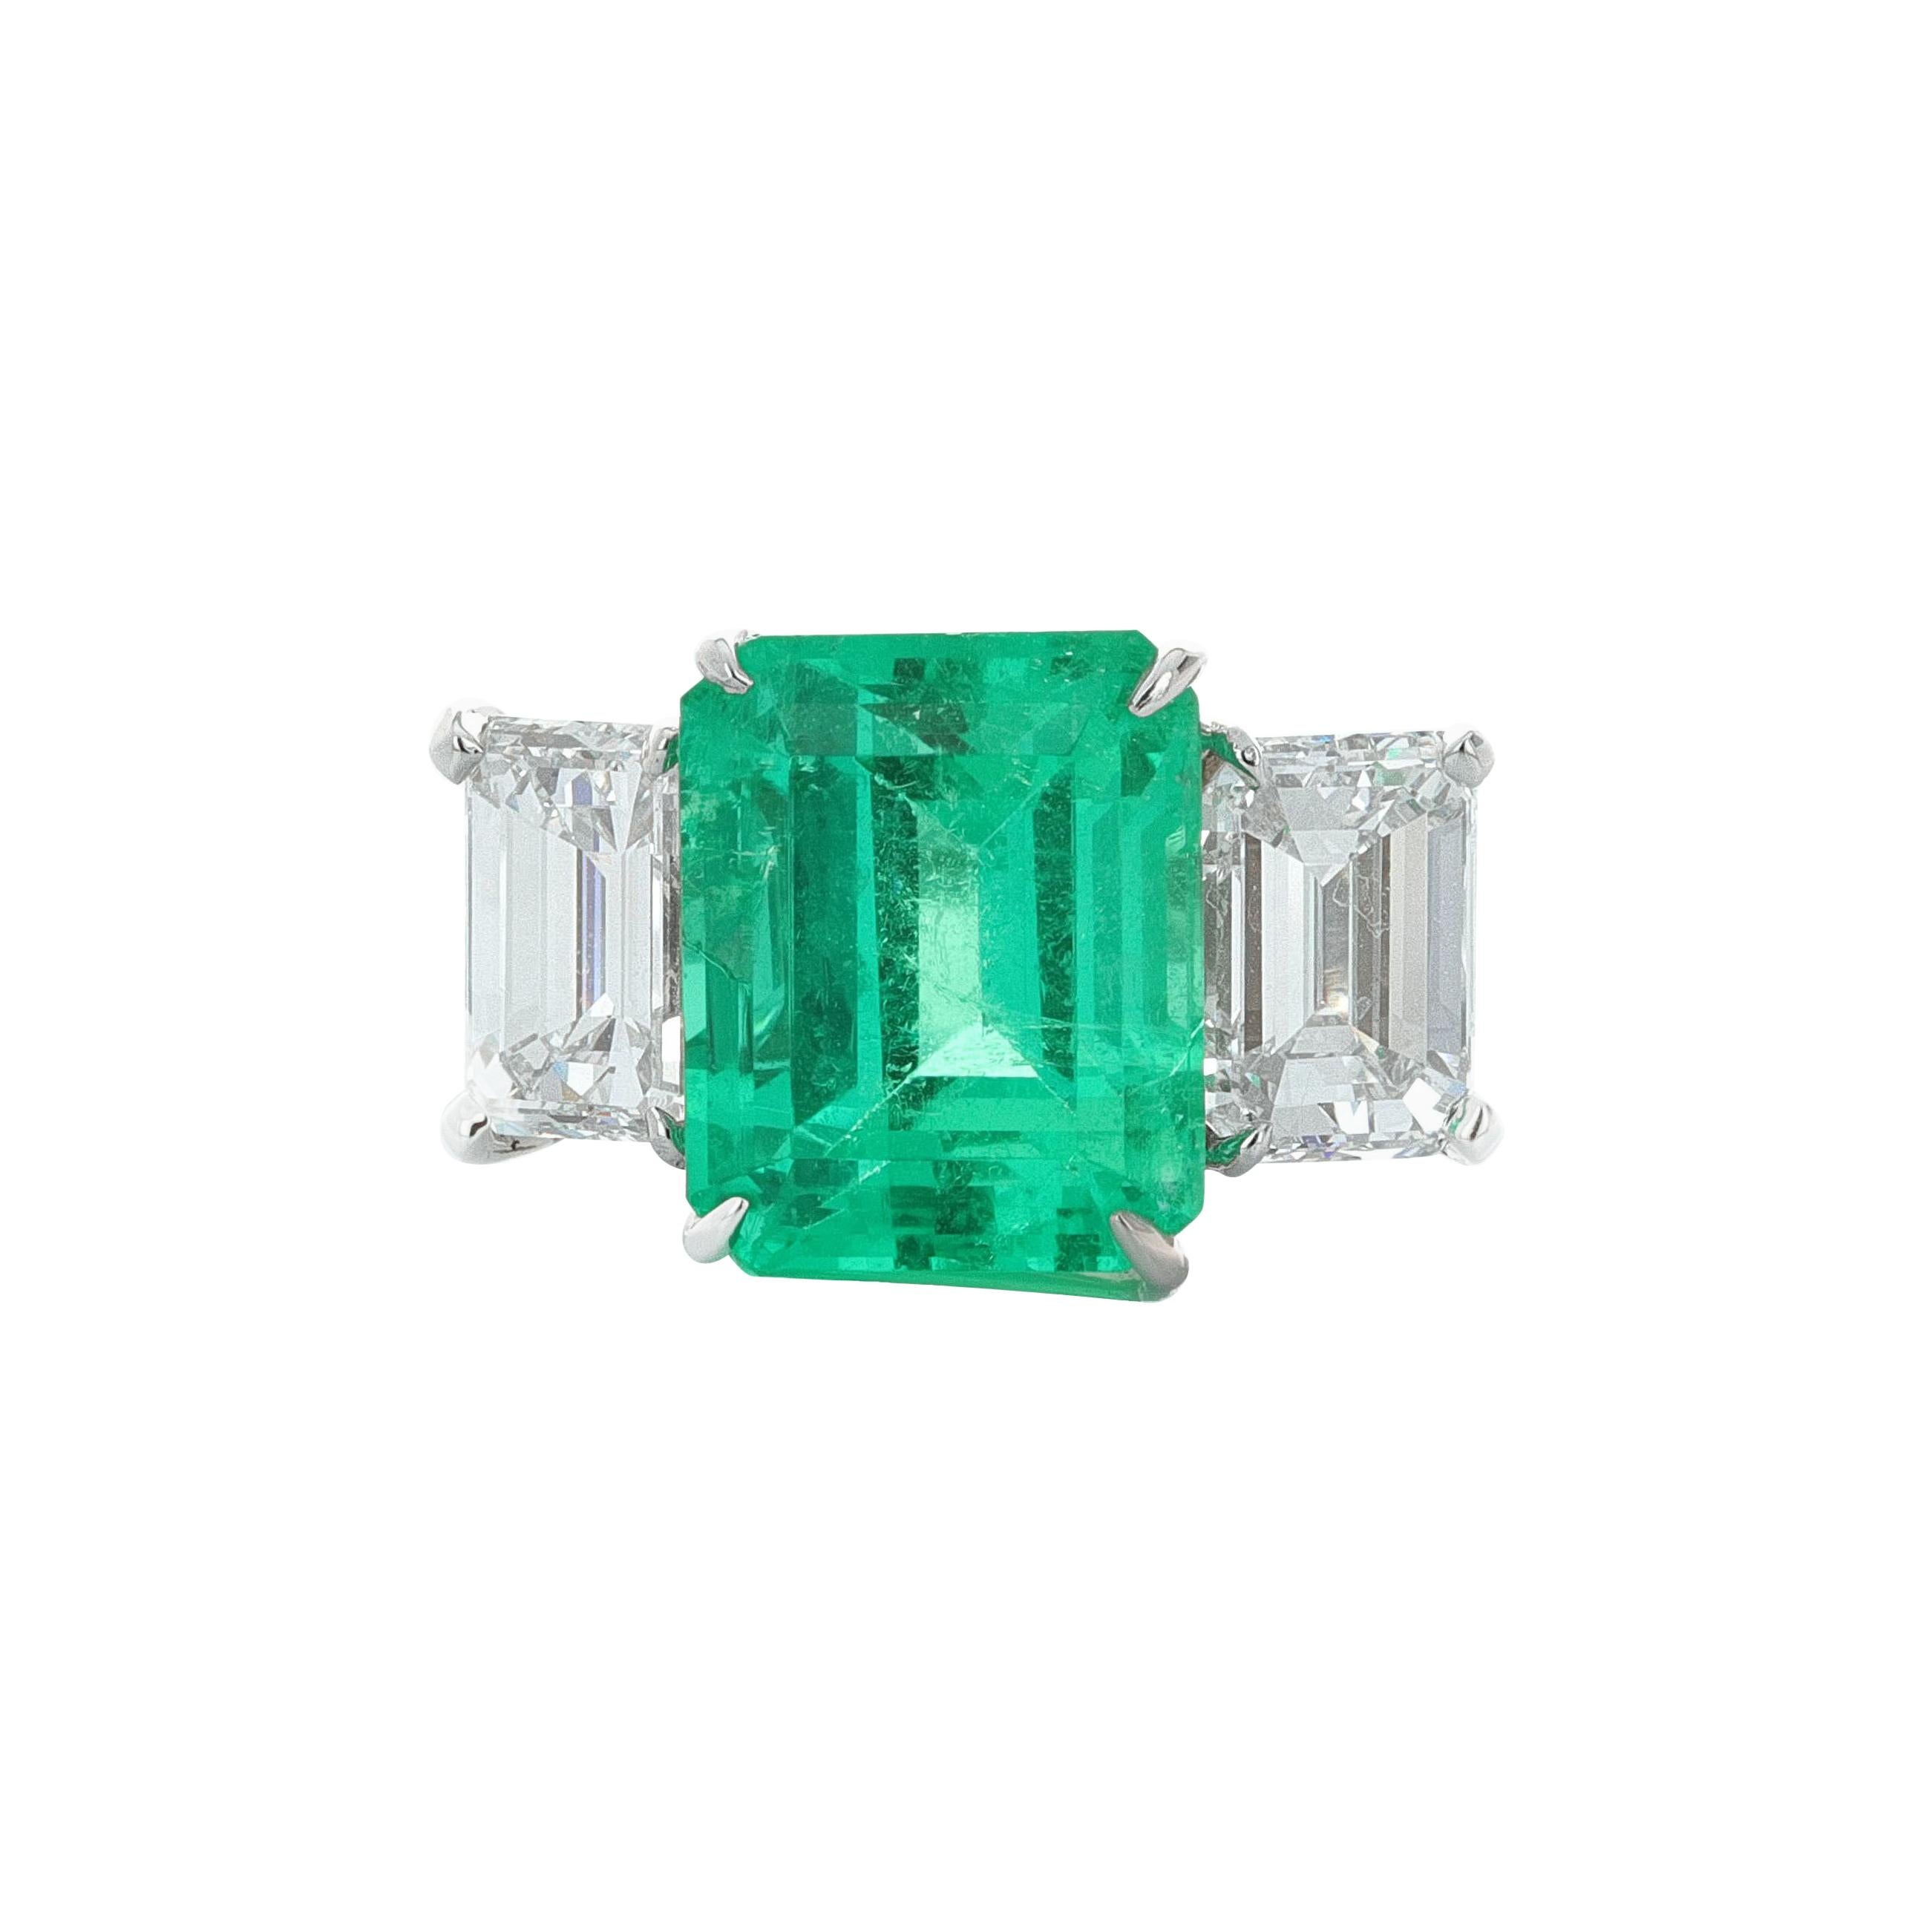 GIA and AGL Certified, Three-Stone Emerald and Diamond Ring